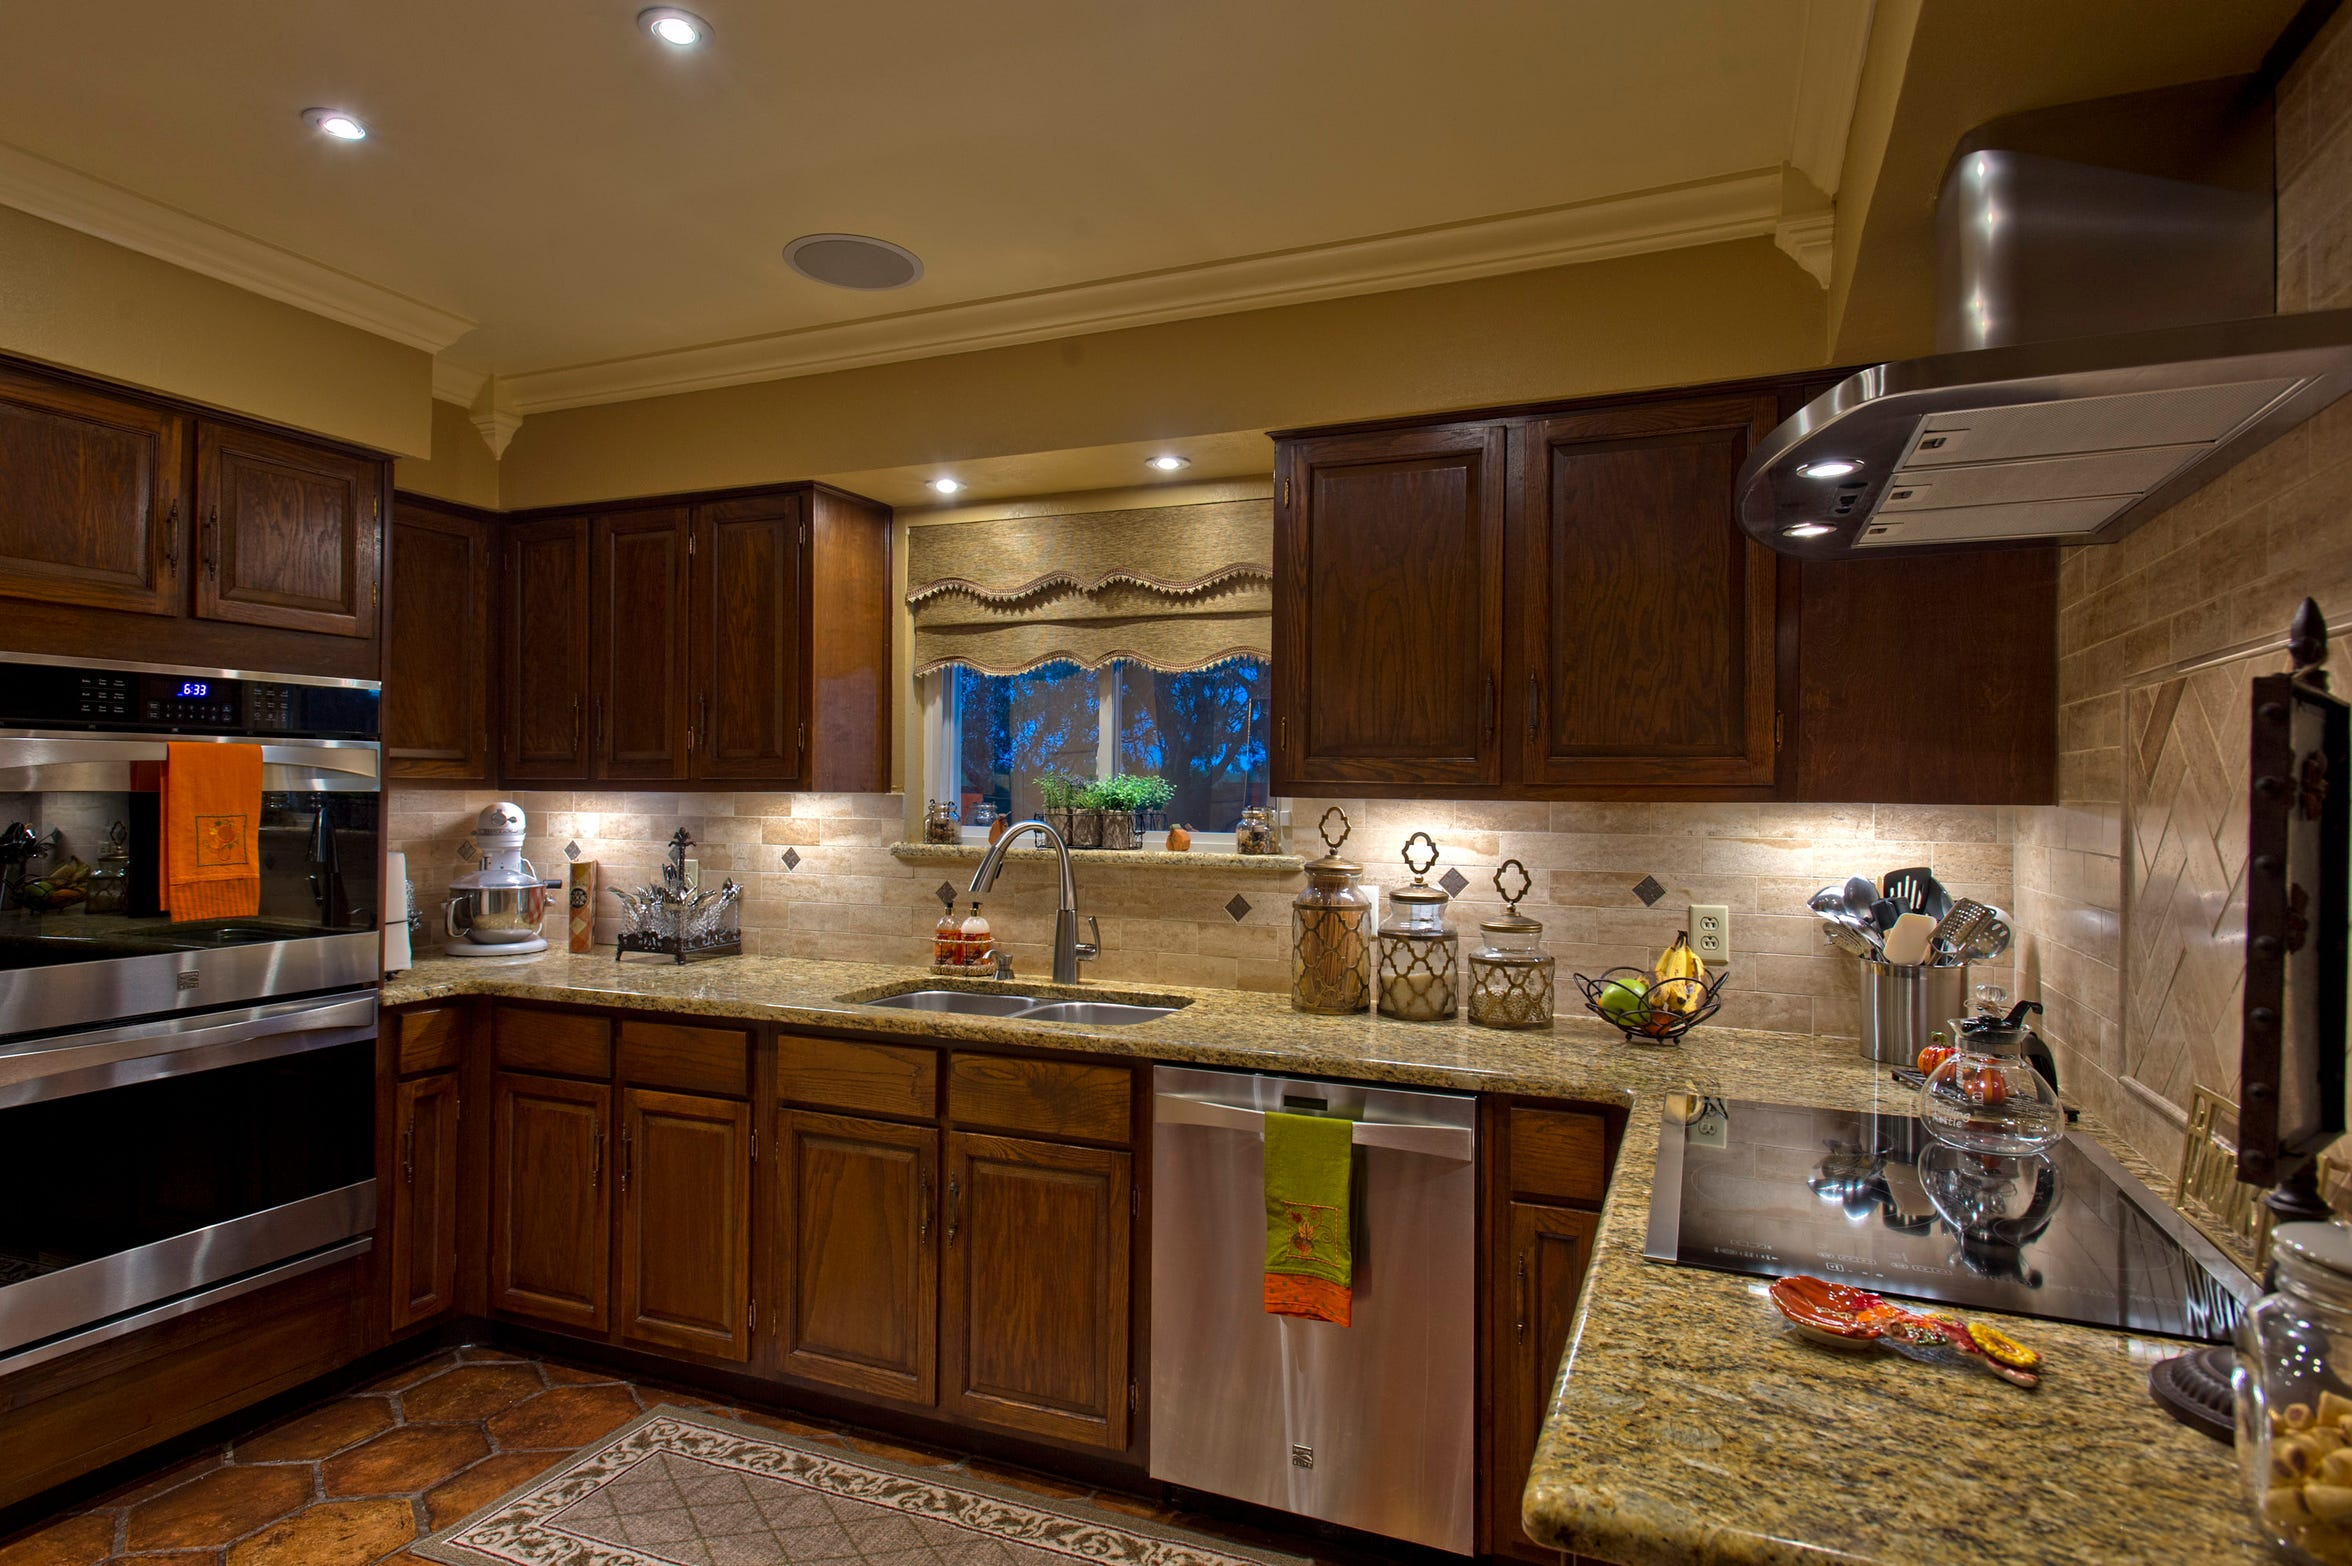 The huge kitchen is a made for the cook, easy for entertaining w/granite tops, wine cooler, double ovens, breakfast bar, buffet counter & more!